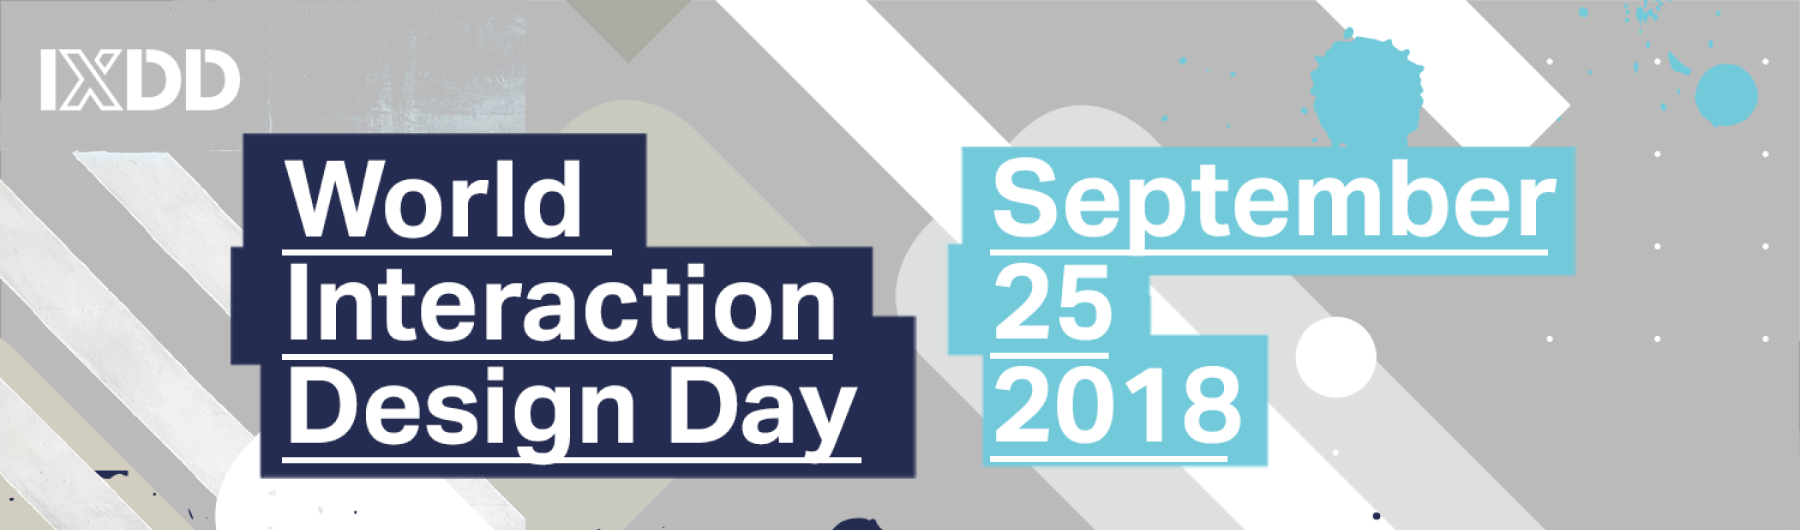 World Interaction Design Day 2018